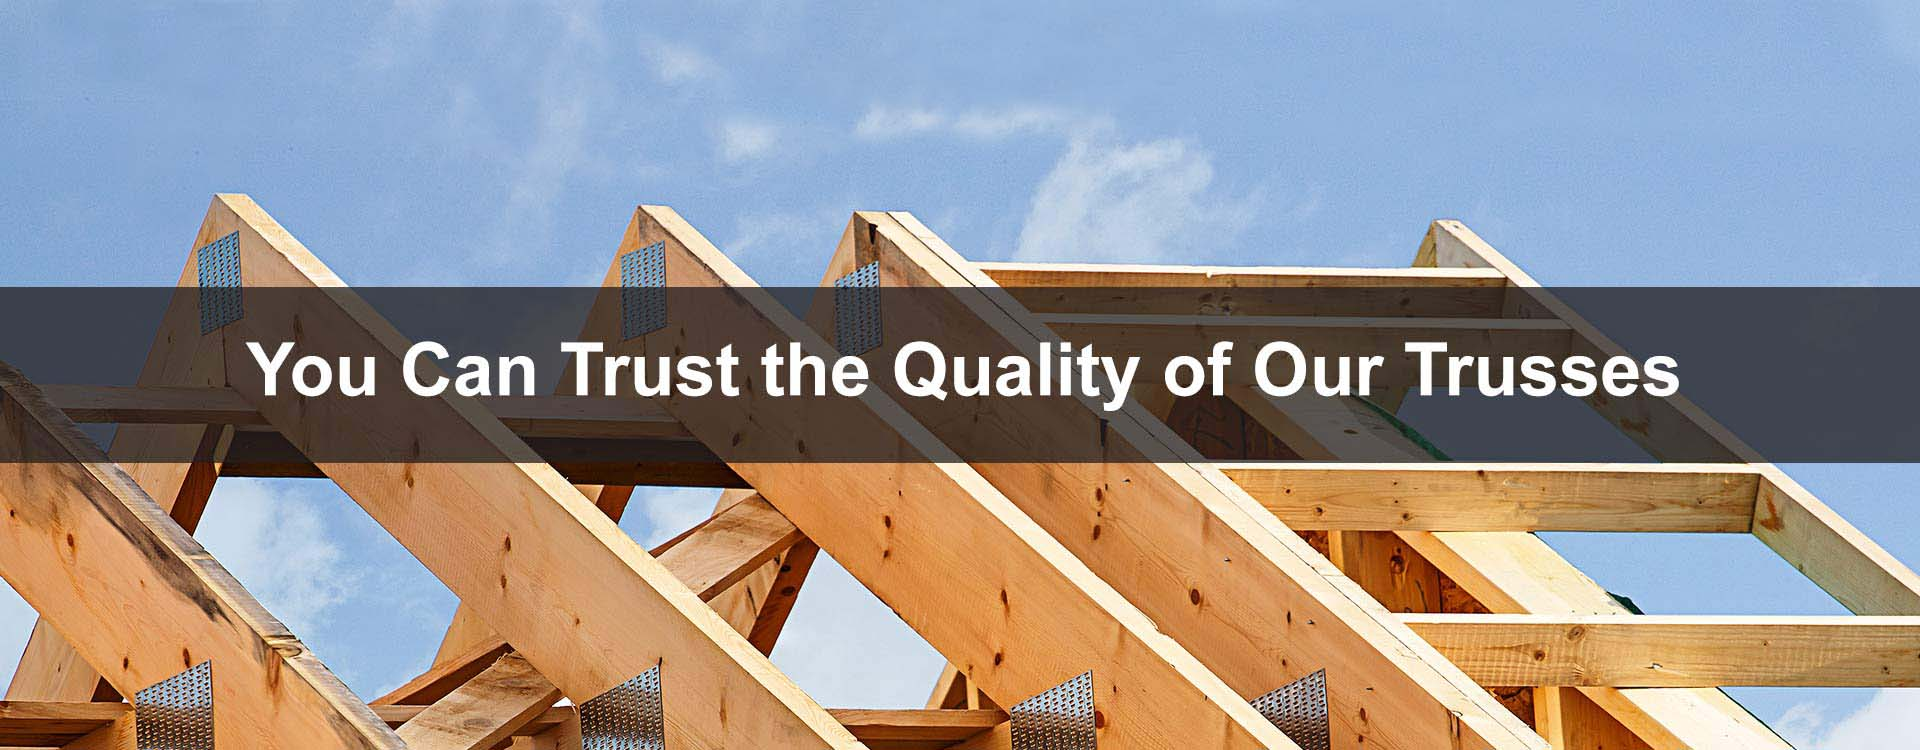 You can trust the quality of our trusses | Quality Truss